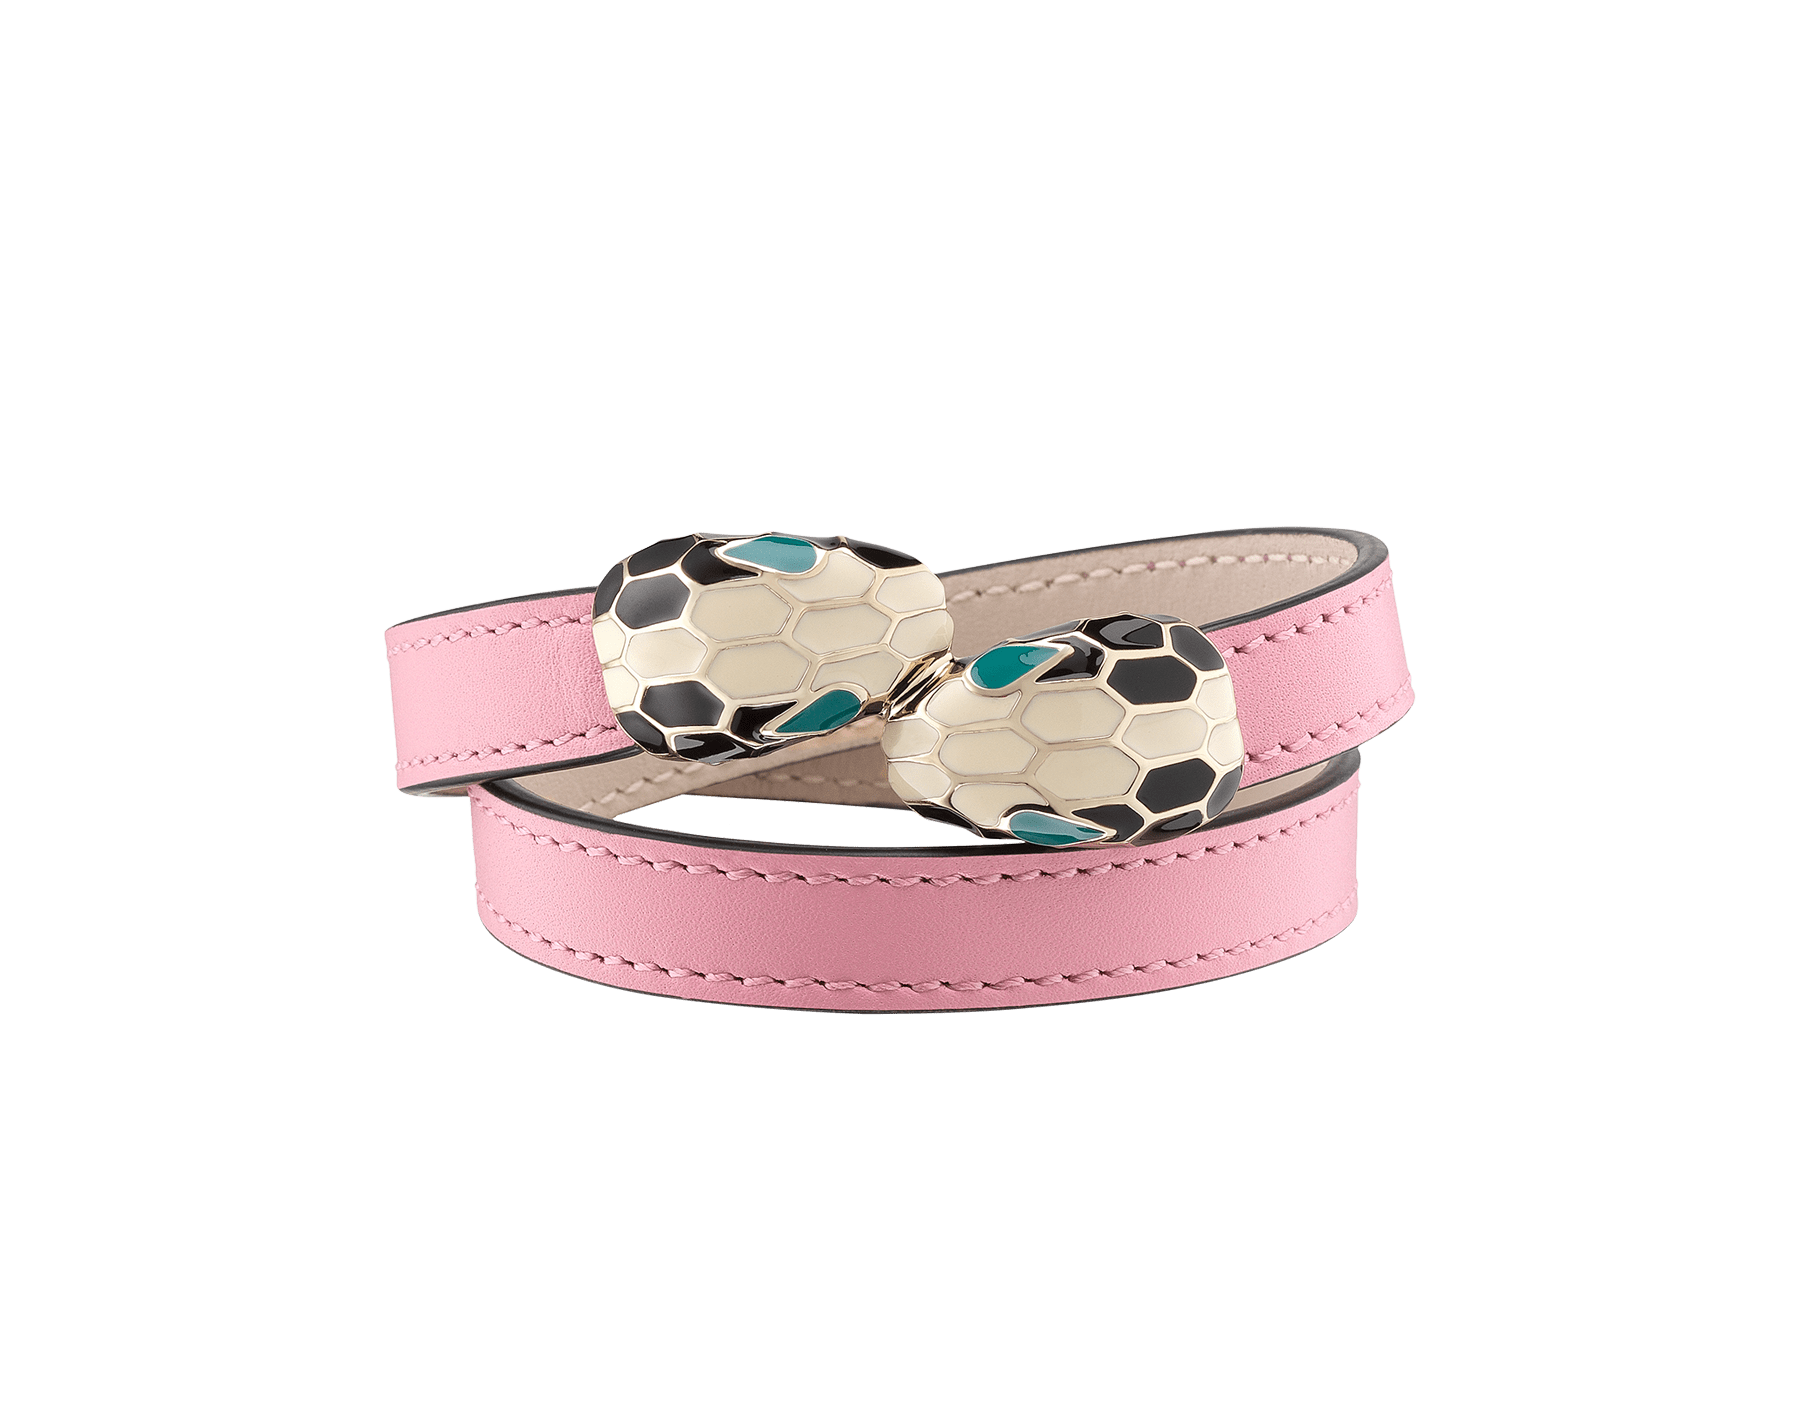 Serpenti Forever multi-coiled bracelet in flamingo quartz calf leather, with brass light gold plated hardware. Iconic contraire snakehead décor in black and white enamel, with green enamel eyes. MCSerp-CL-FQ image 1